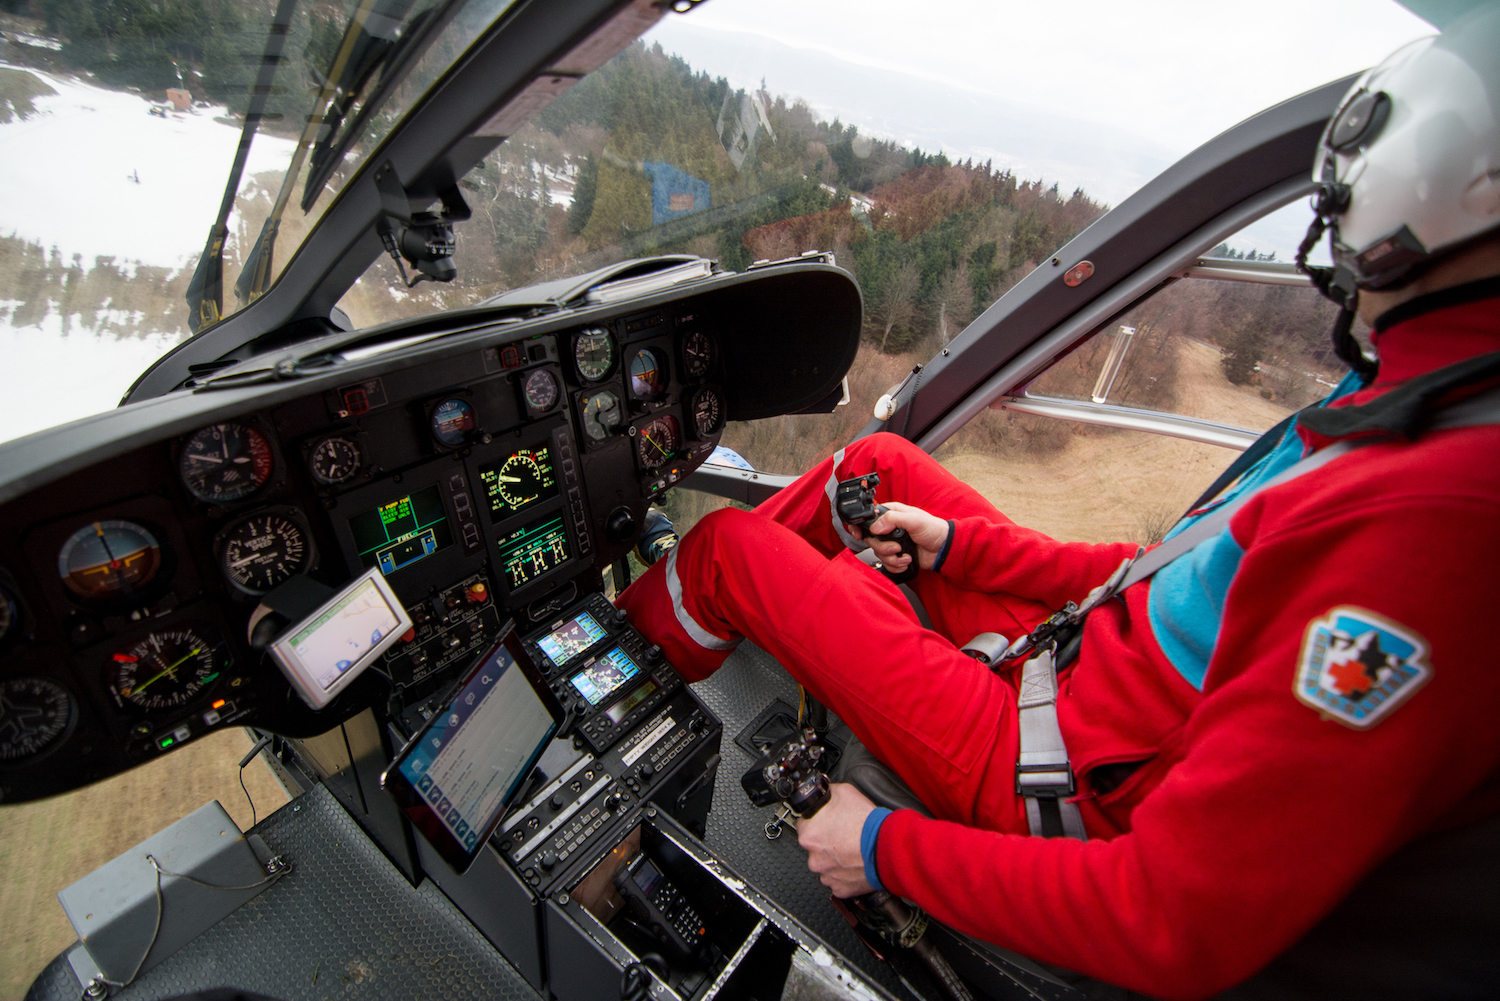 HEMS navigation and coordination system